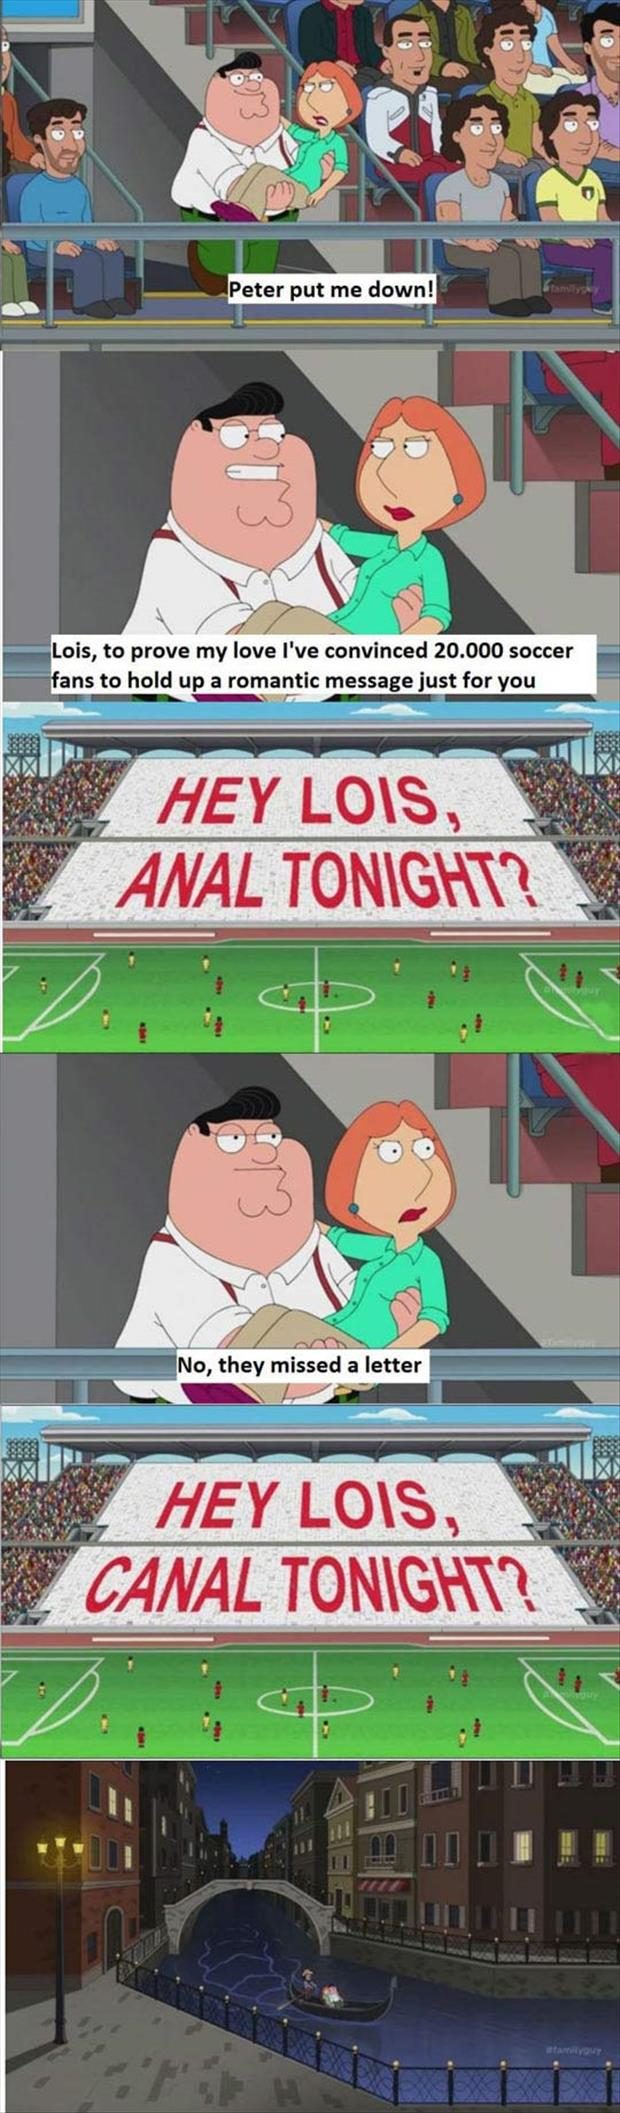 the family guy funny captions